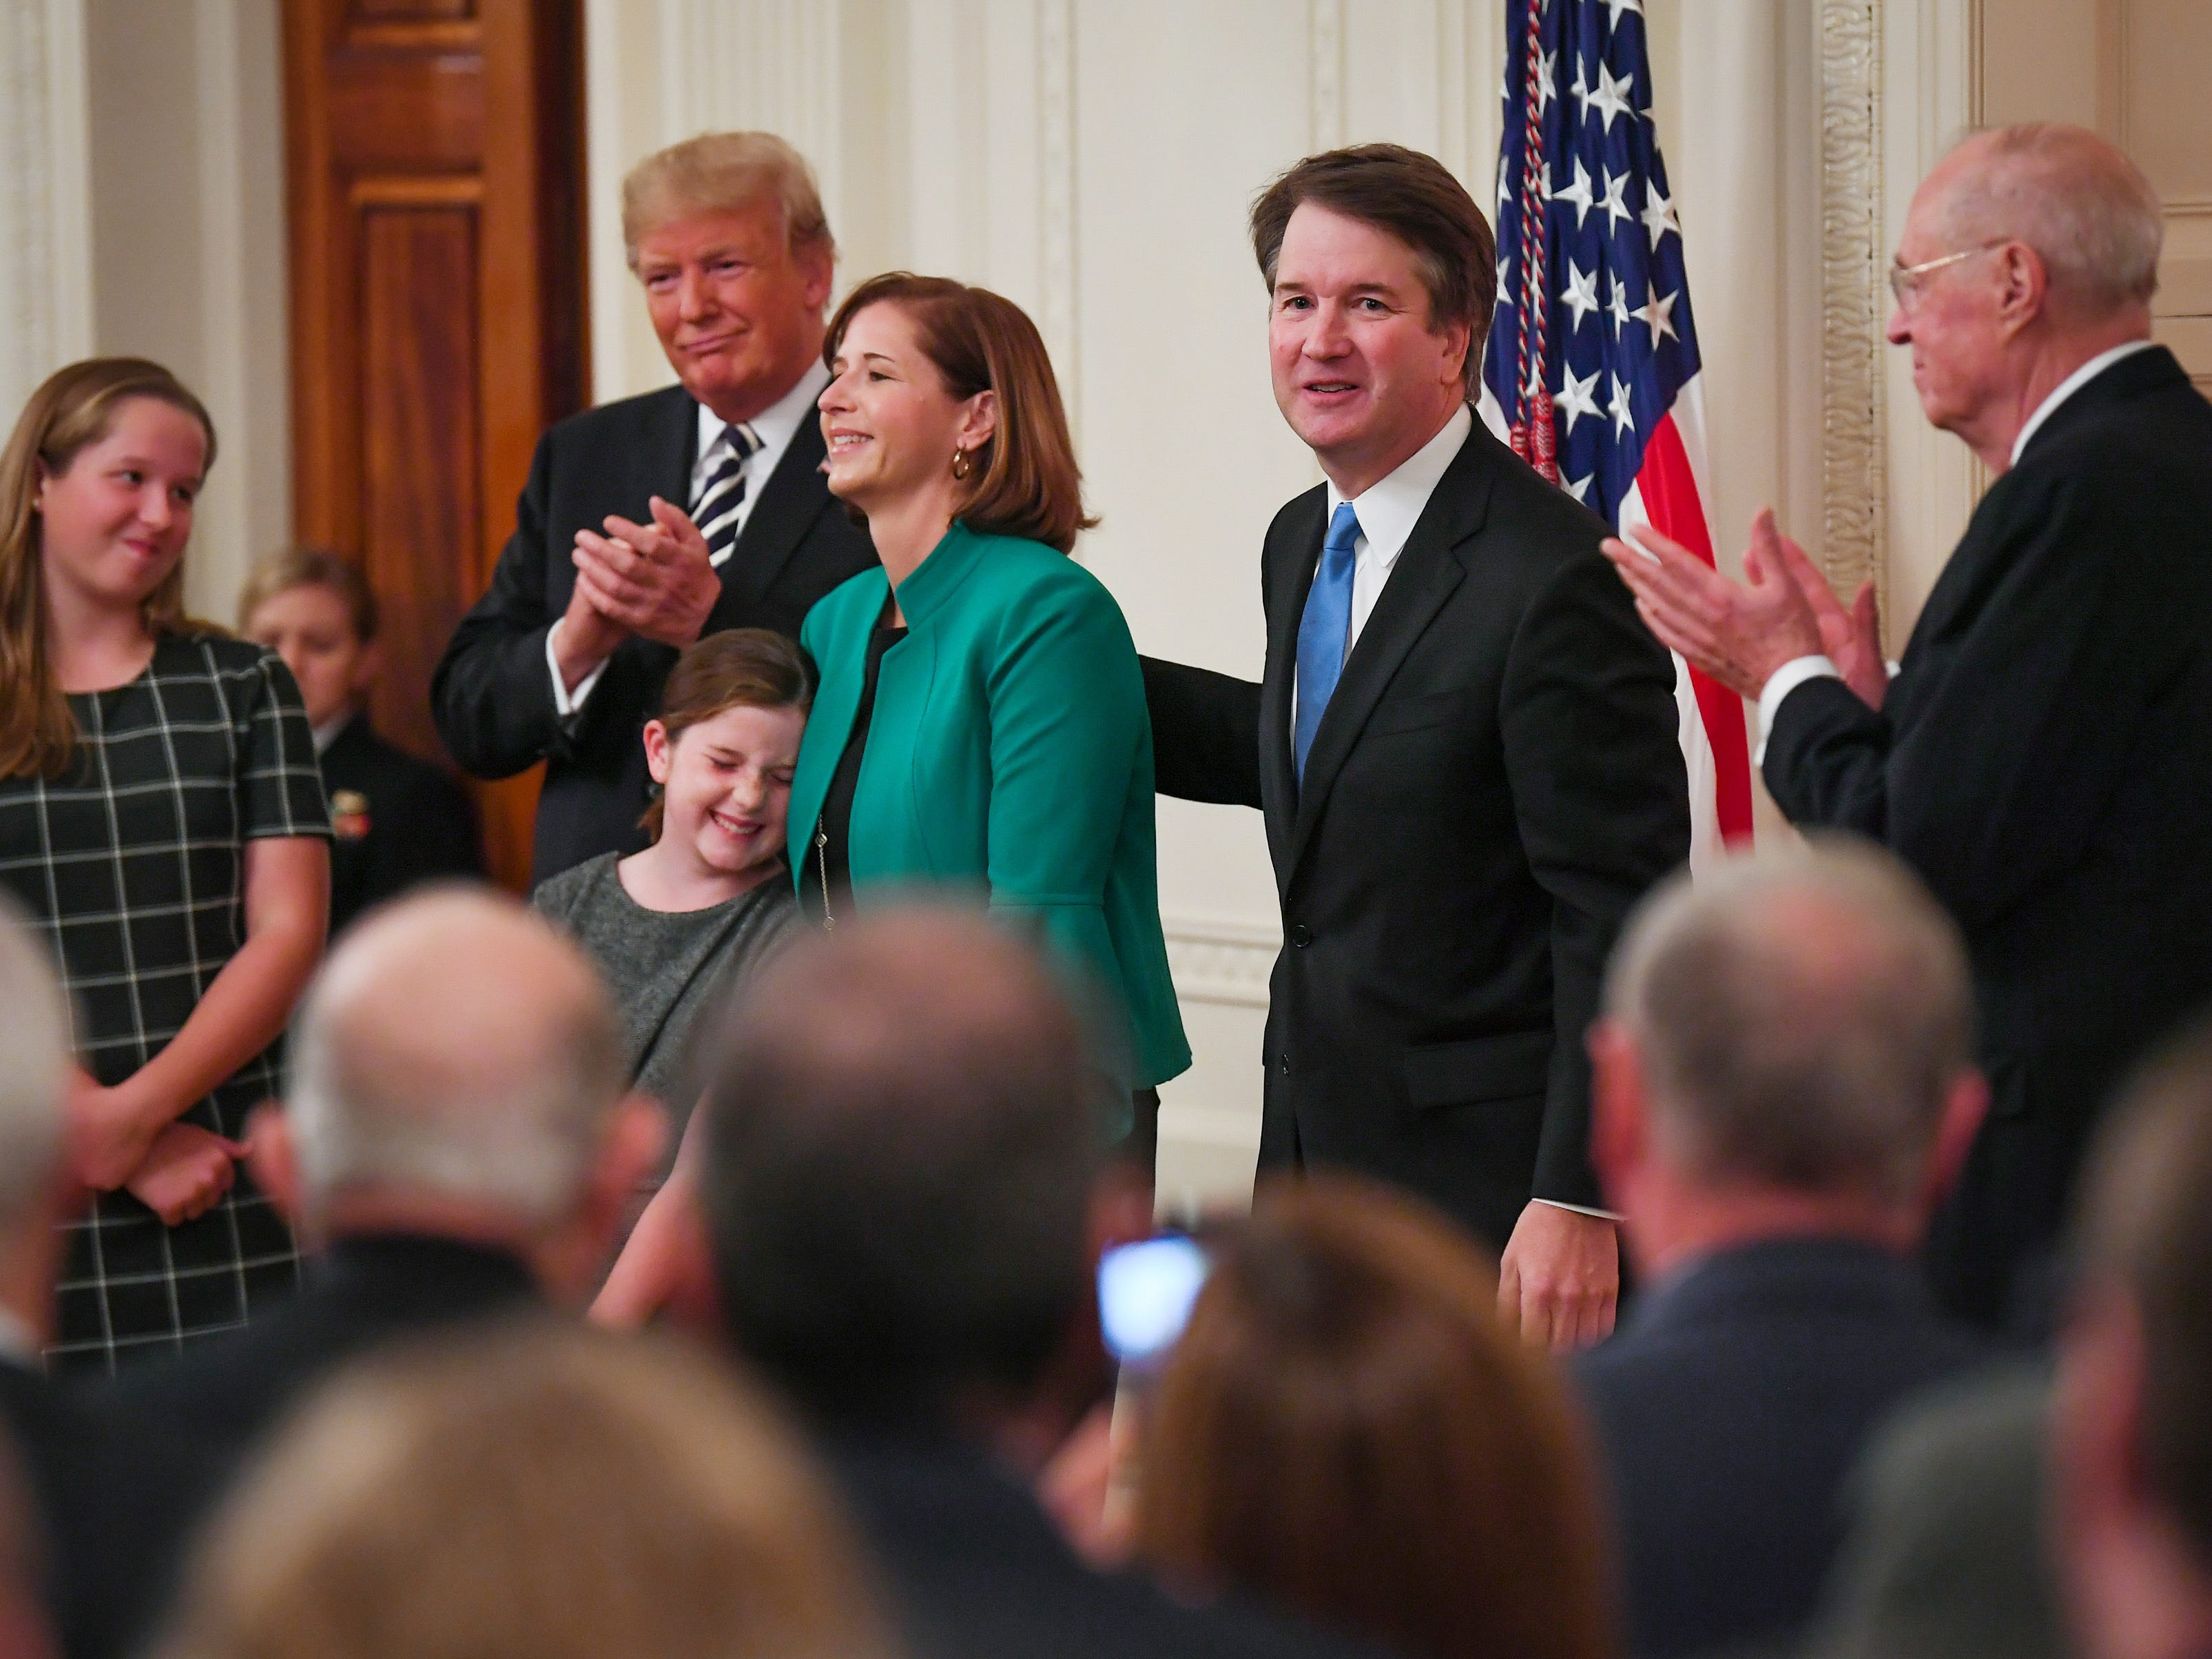 Justice Brett Kavanaugh, his family, President Donald Trump and retired Supreme Court Justice Anthony Kennedy during the ceremony in the East Room of the White House.